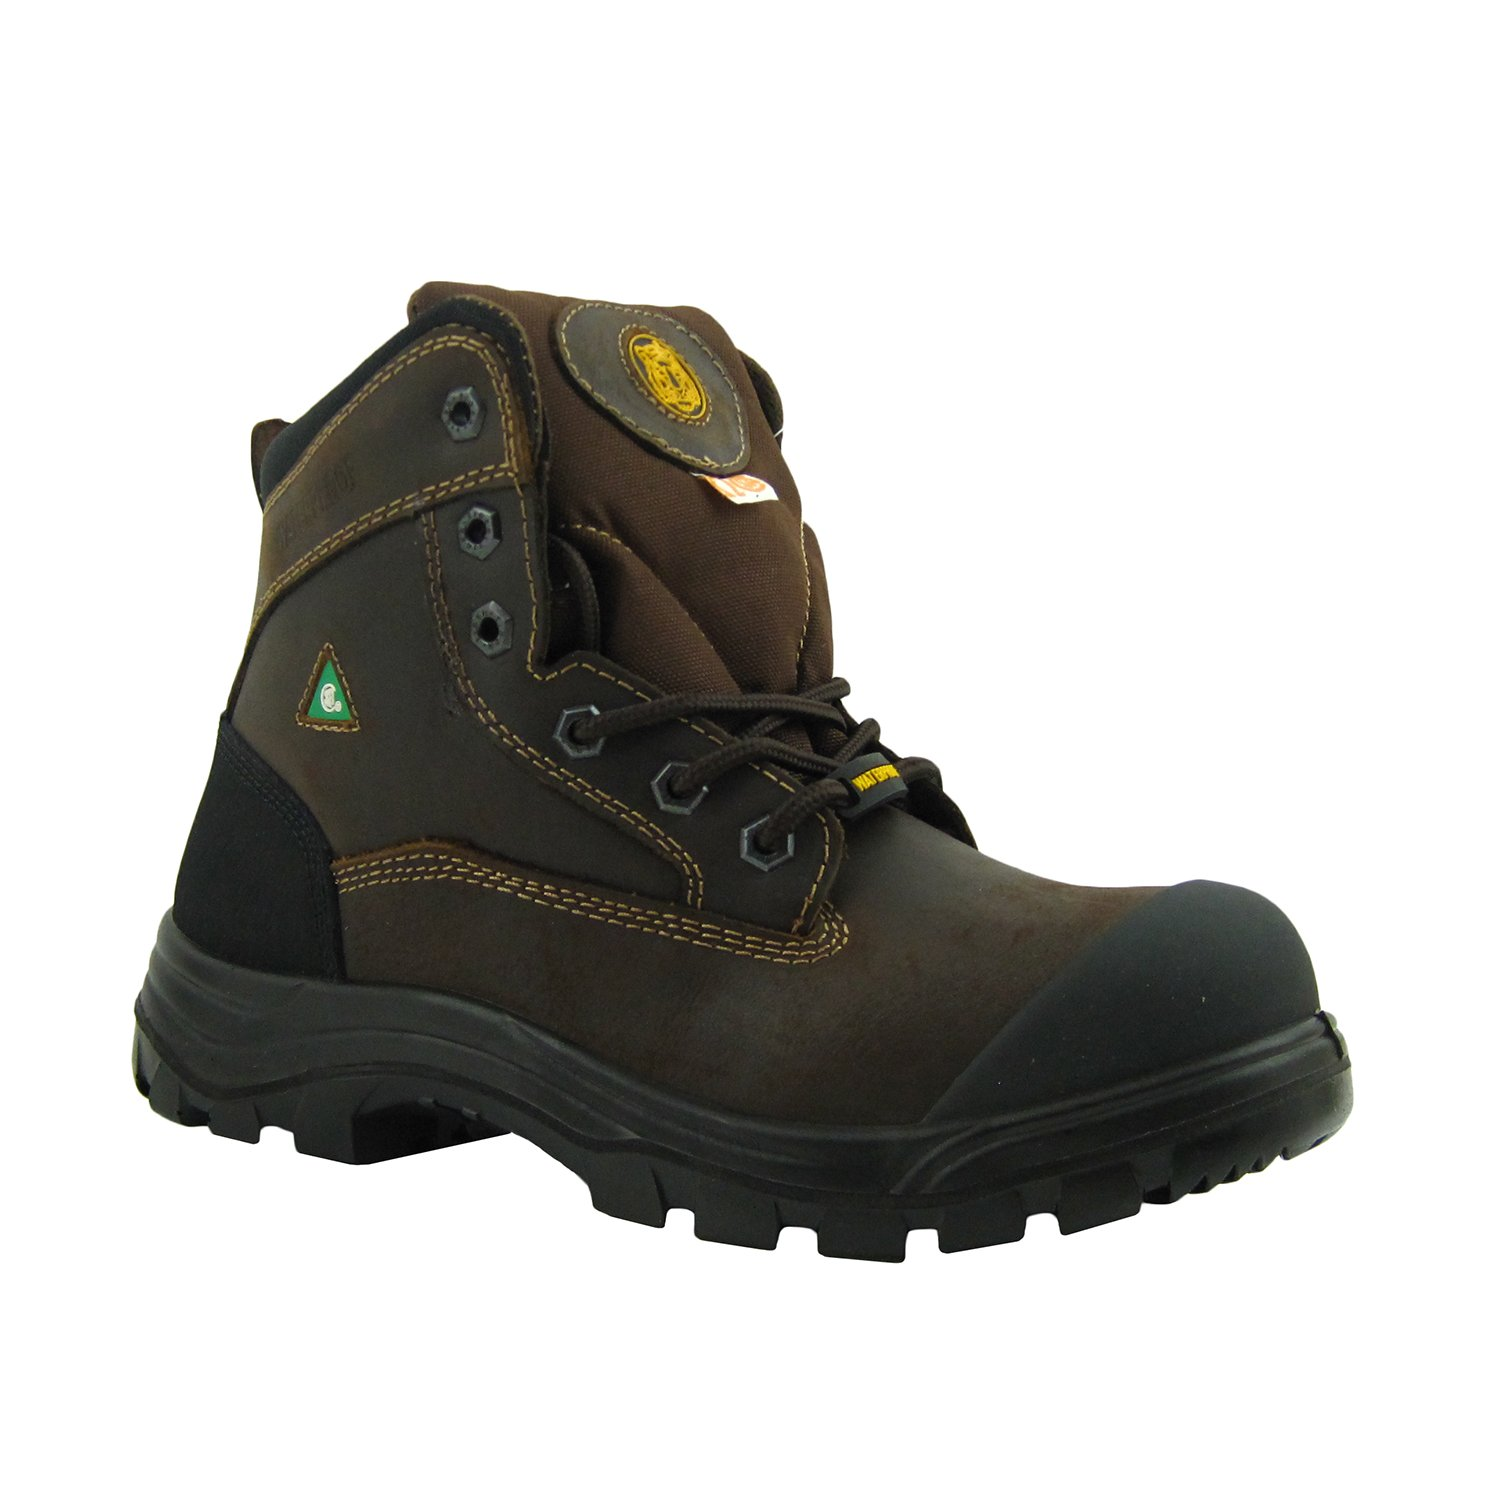 605b2f88acb Tiger CSA Safety Men s 6 Inch Lightweight Waterproof Work Safety Boots -  7666